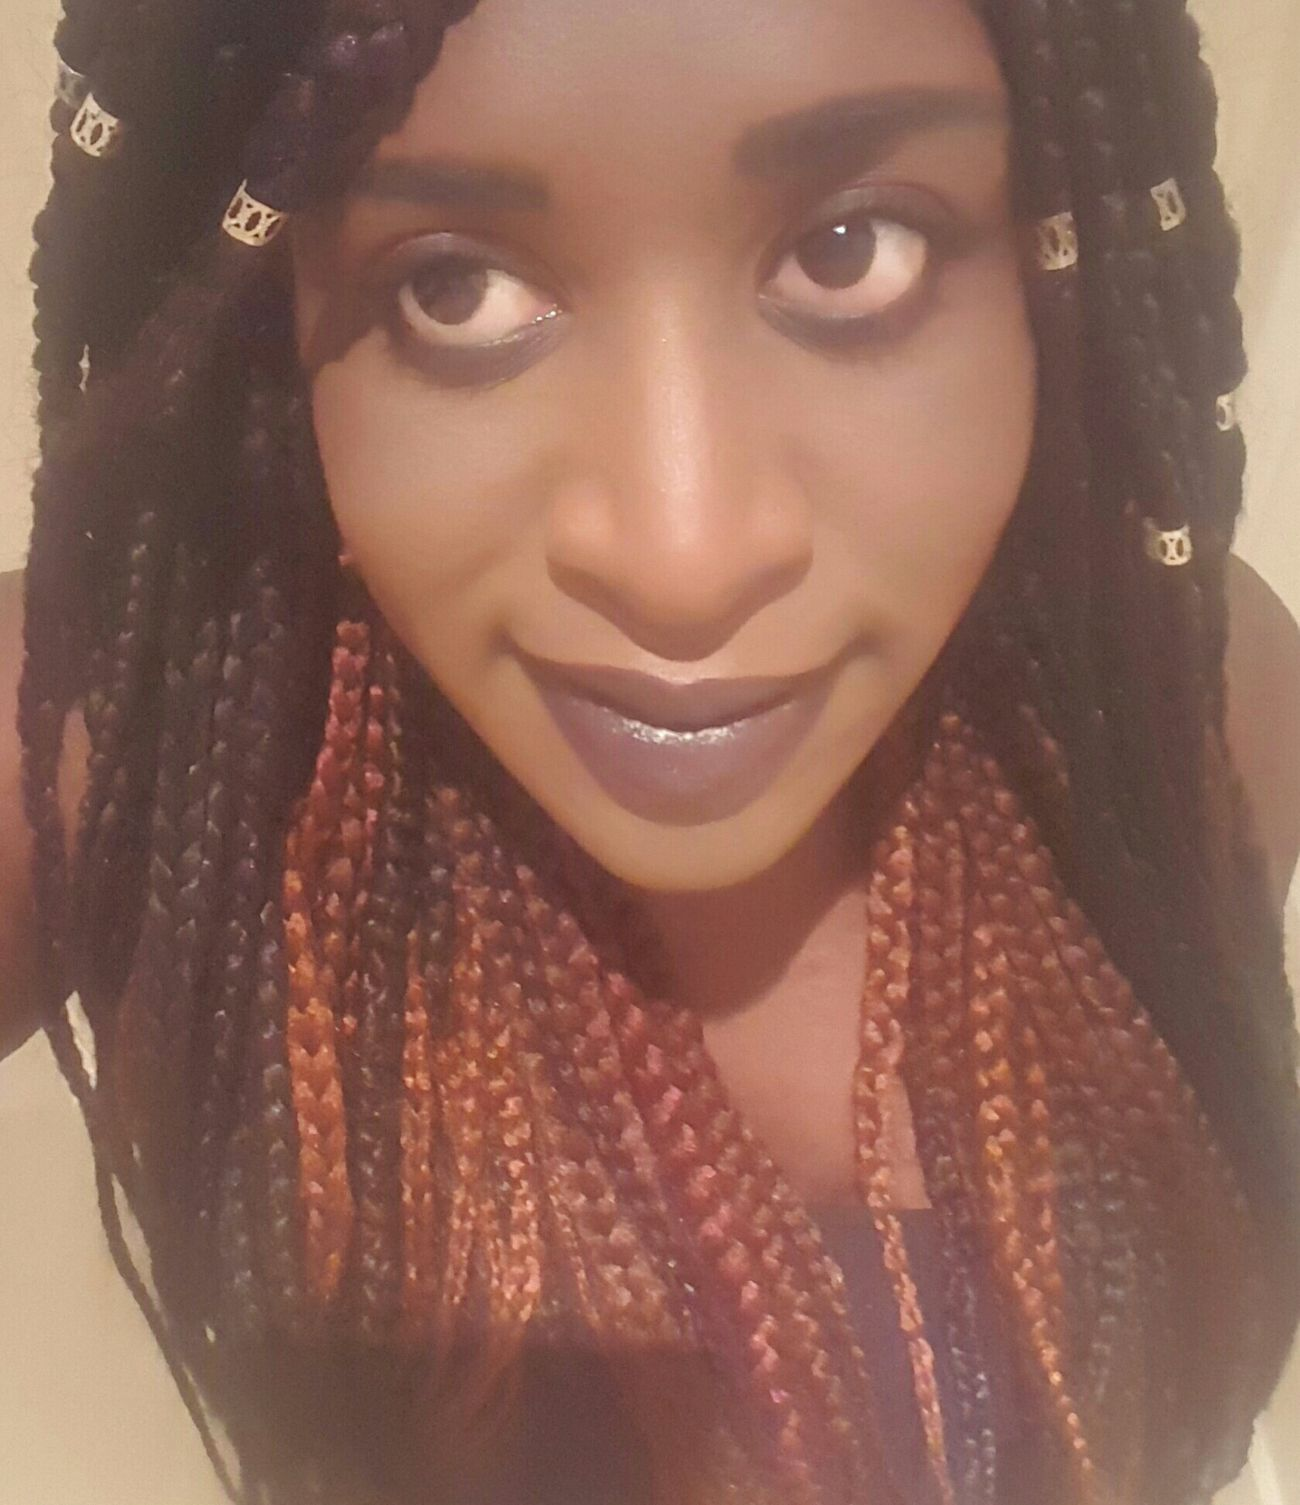 Back to braids! Box Braids Red Purple And Black Hair That's Me Purple Lipstick